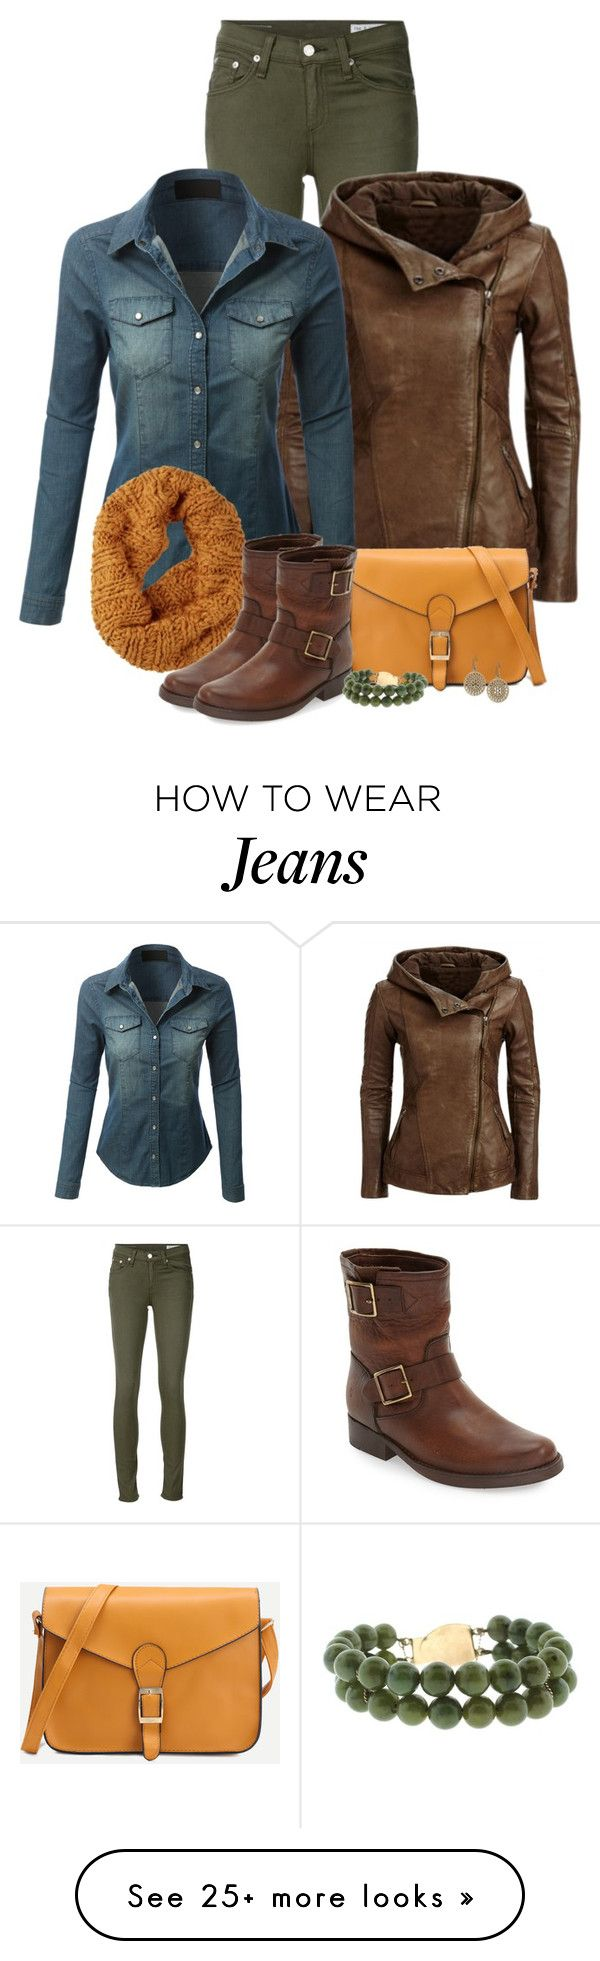 """""""Untitled #61"""" by jennsprettylittlefriend on Polyvore featuring rag & bone/JEAN, LE3NO, Burton, Frye and Lucky Brand"""